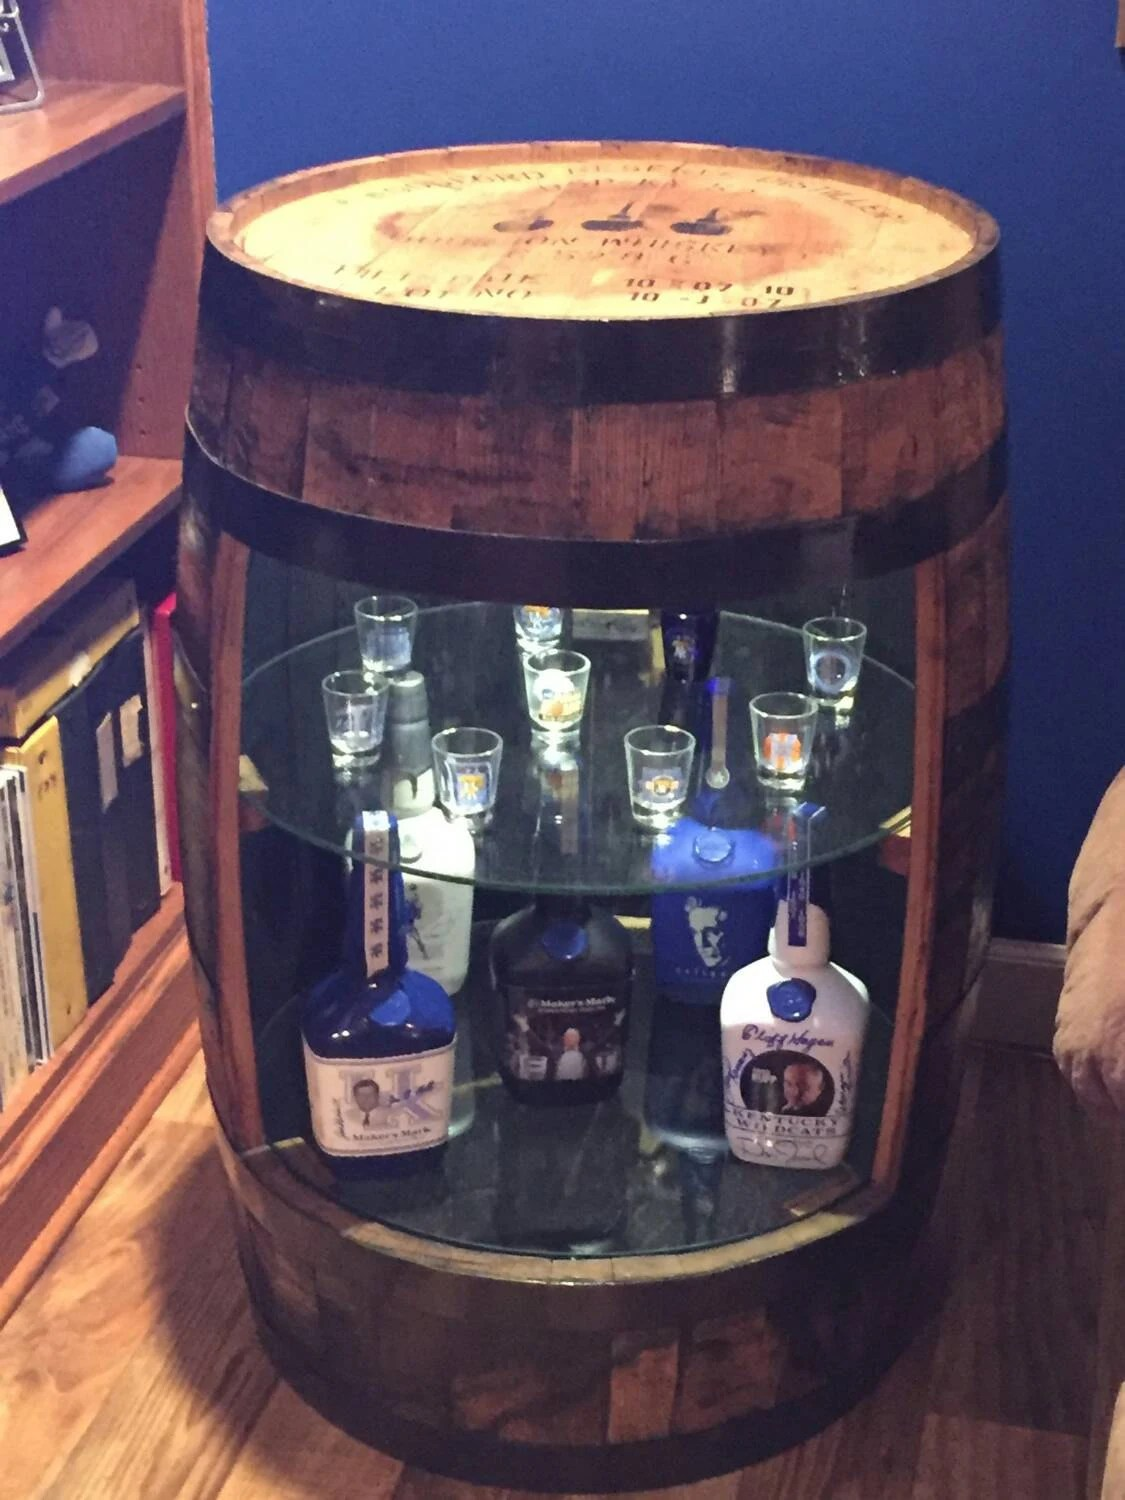 Bourbon barrel display cabinet with glass shelves and